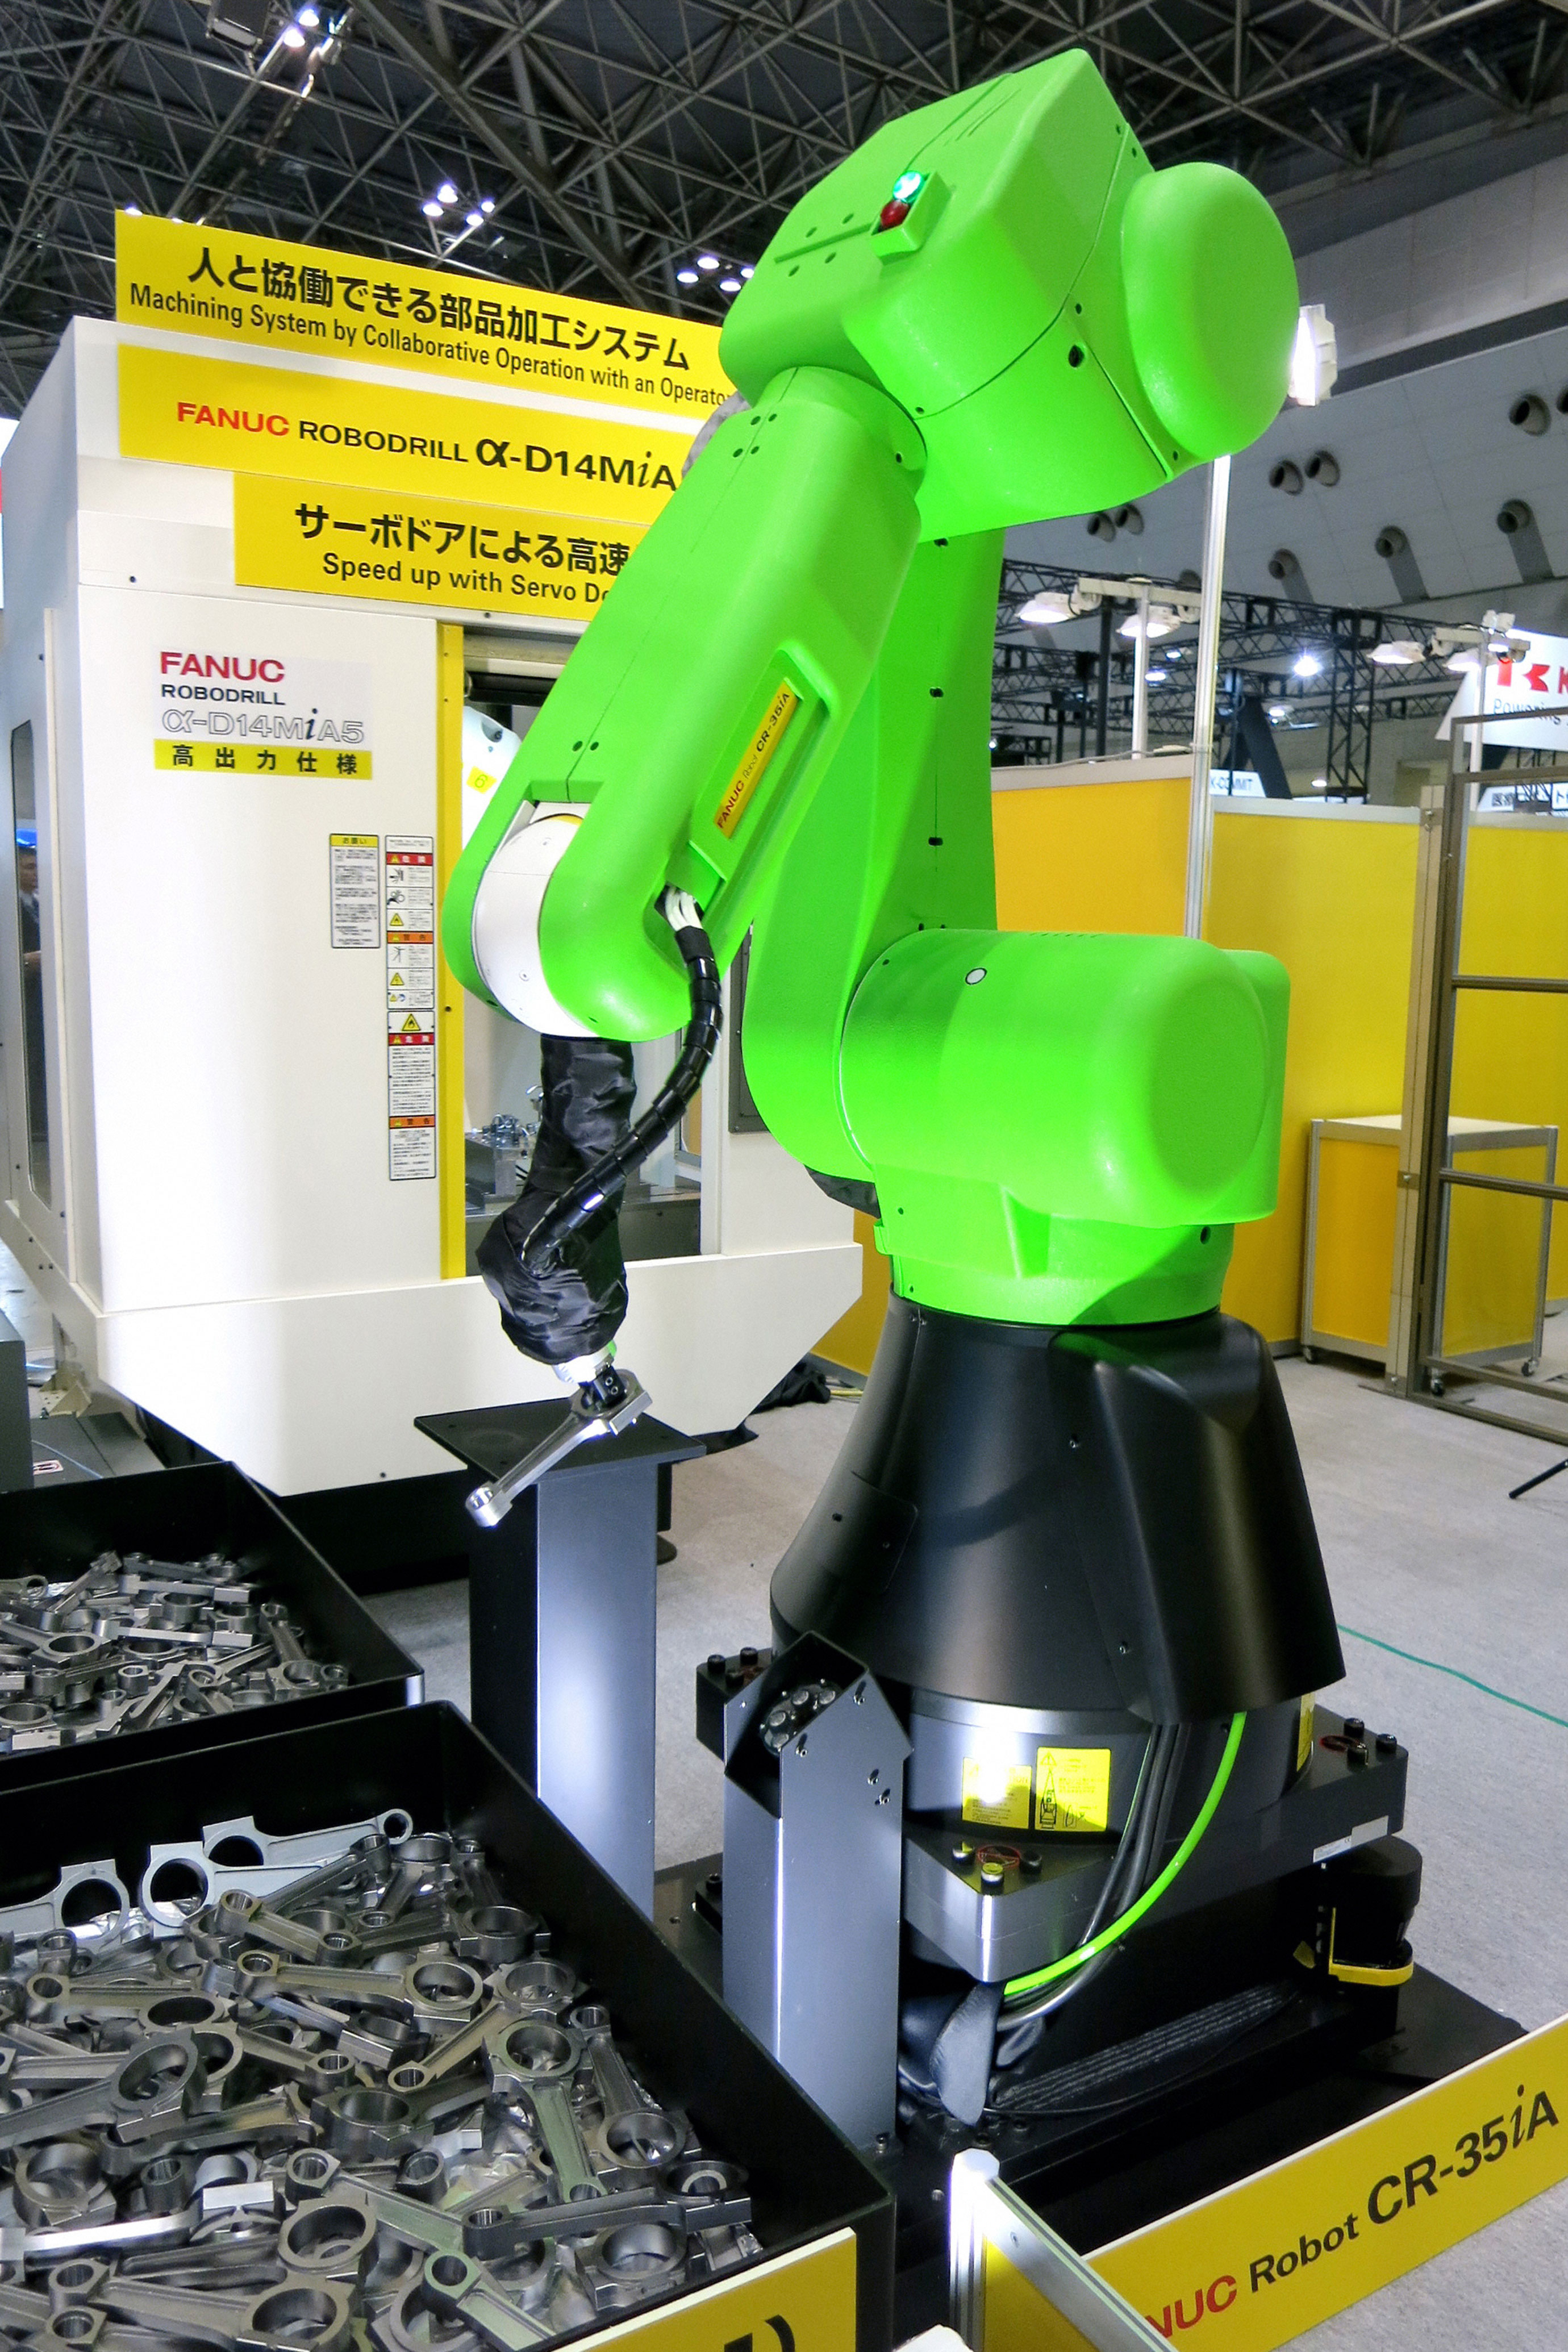 This Factory Robot Learns a New Job Overnight - MIT Technology Review